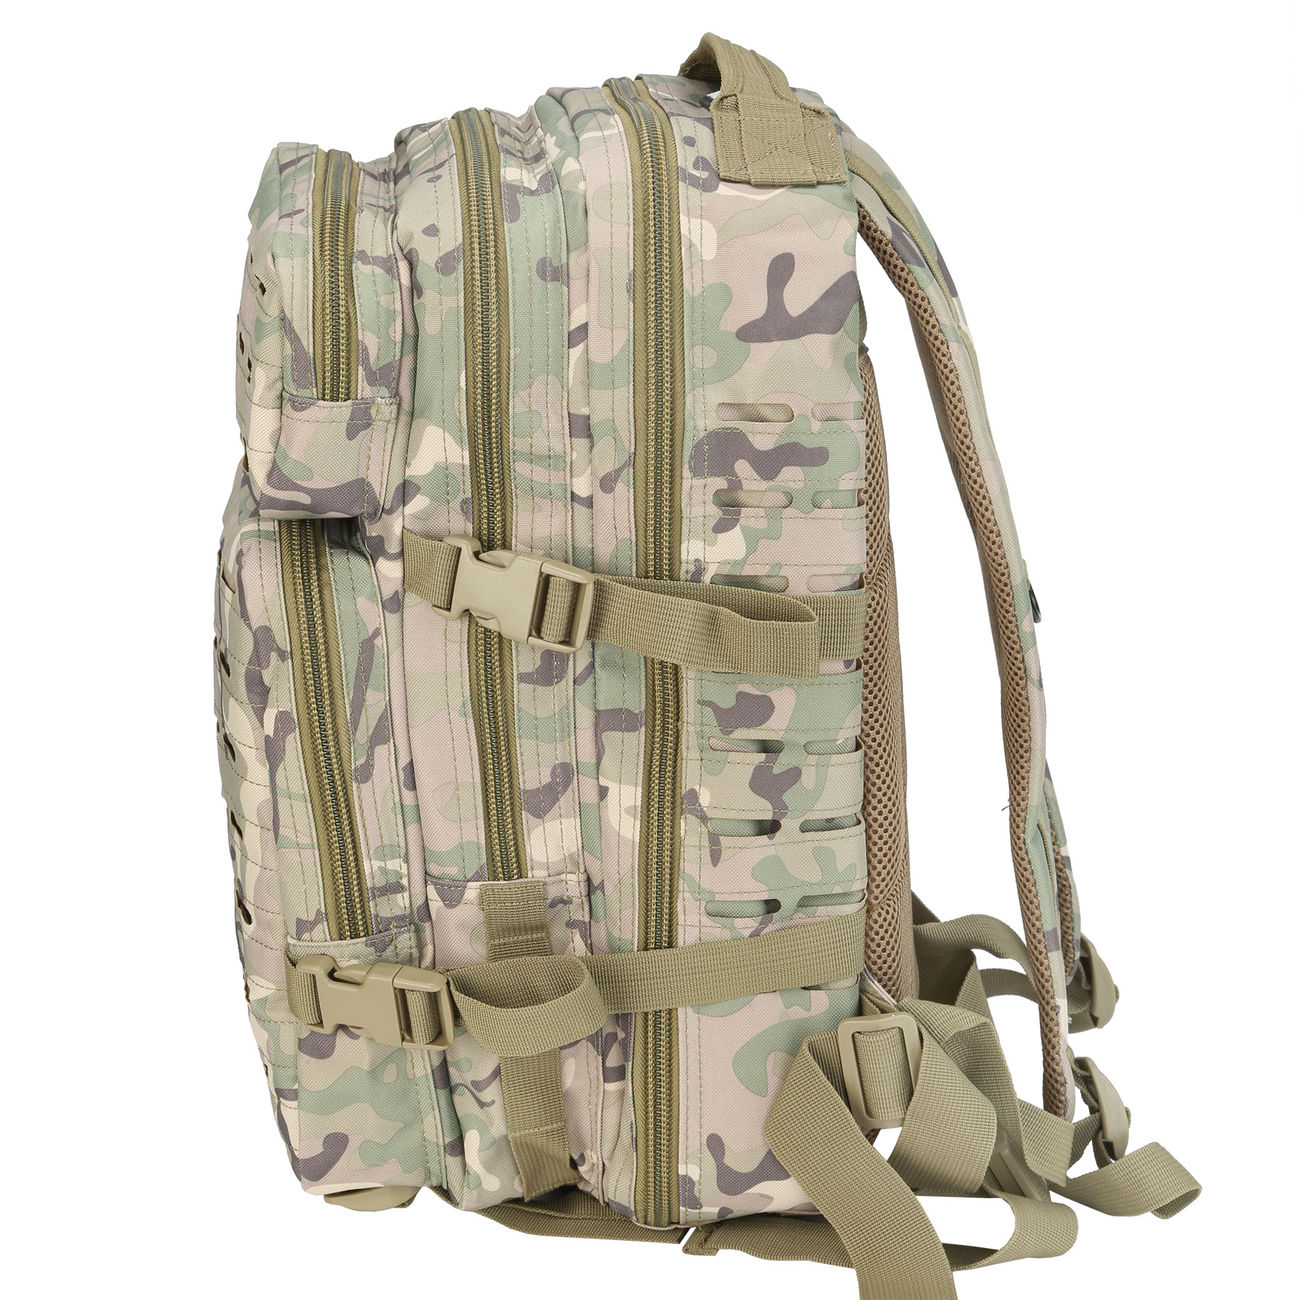 MFH Rucksack US Assault I Laser 30L operation-camo 2